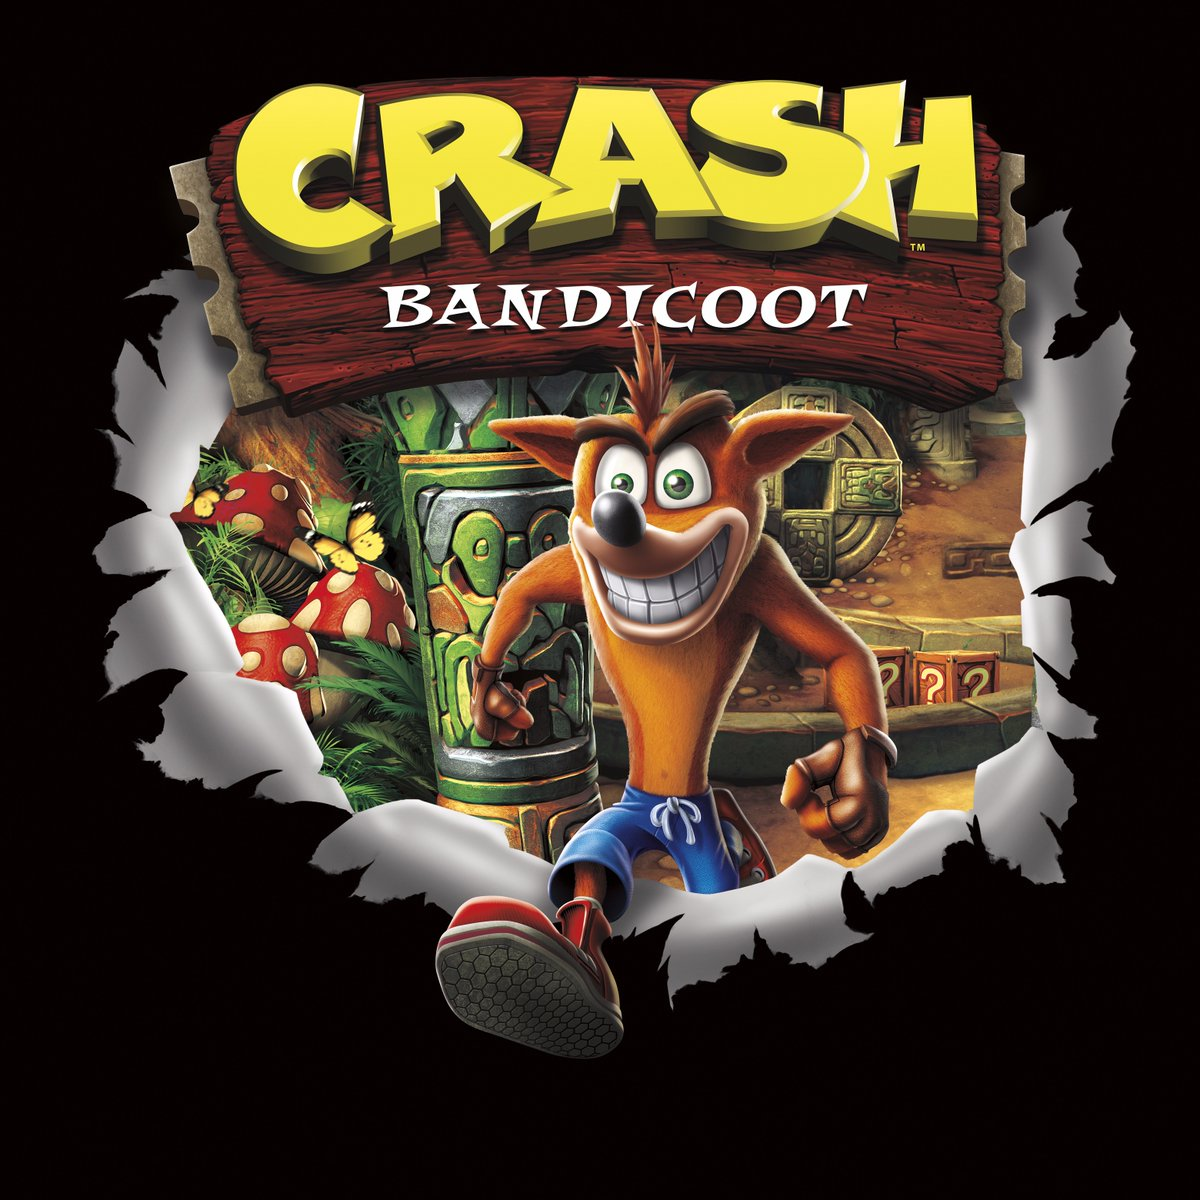 CrashBandicoot-NsaneTrilogy PS4 Div 011